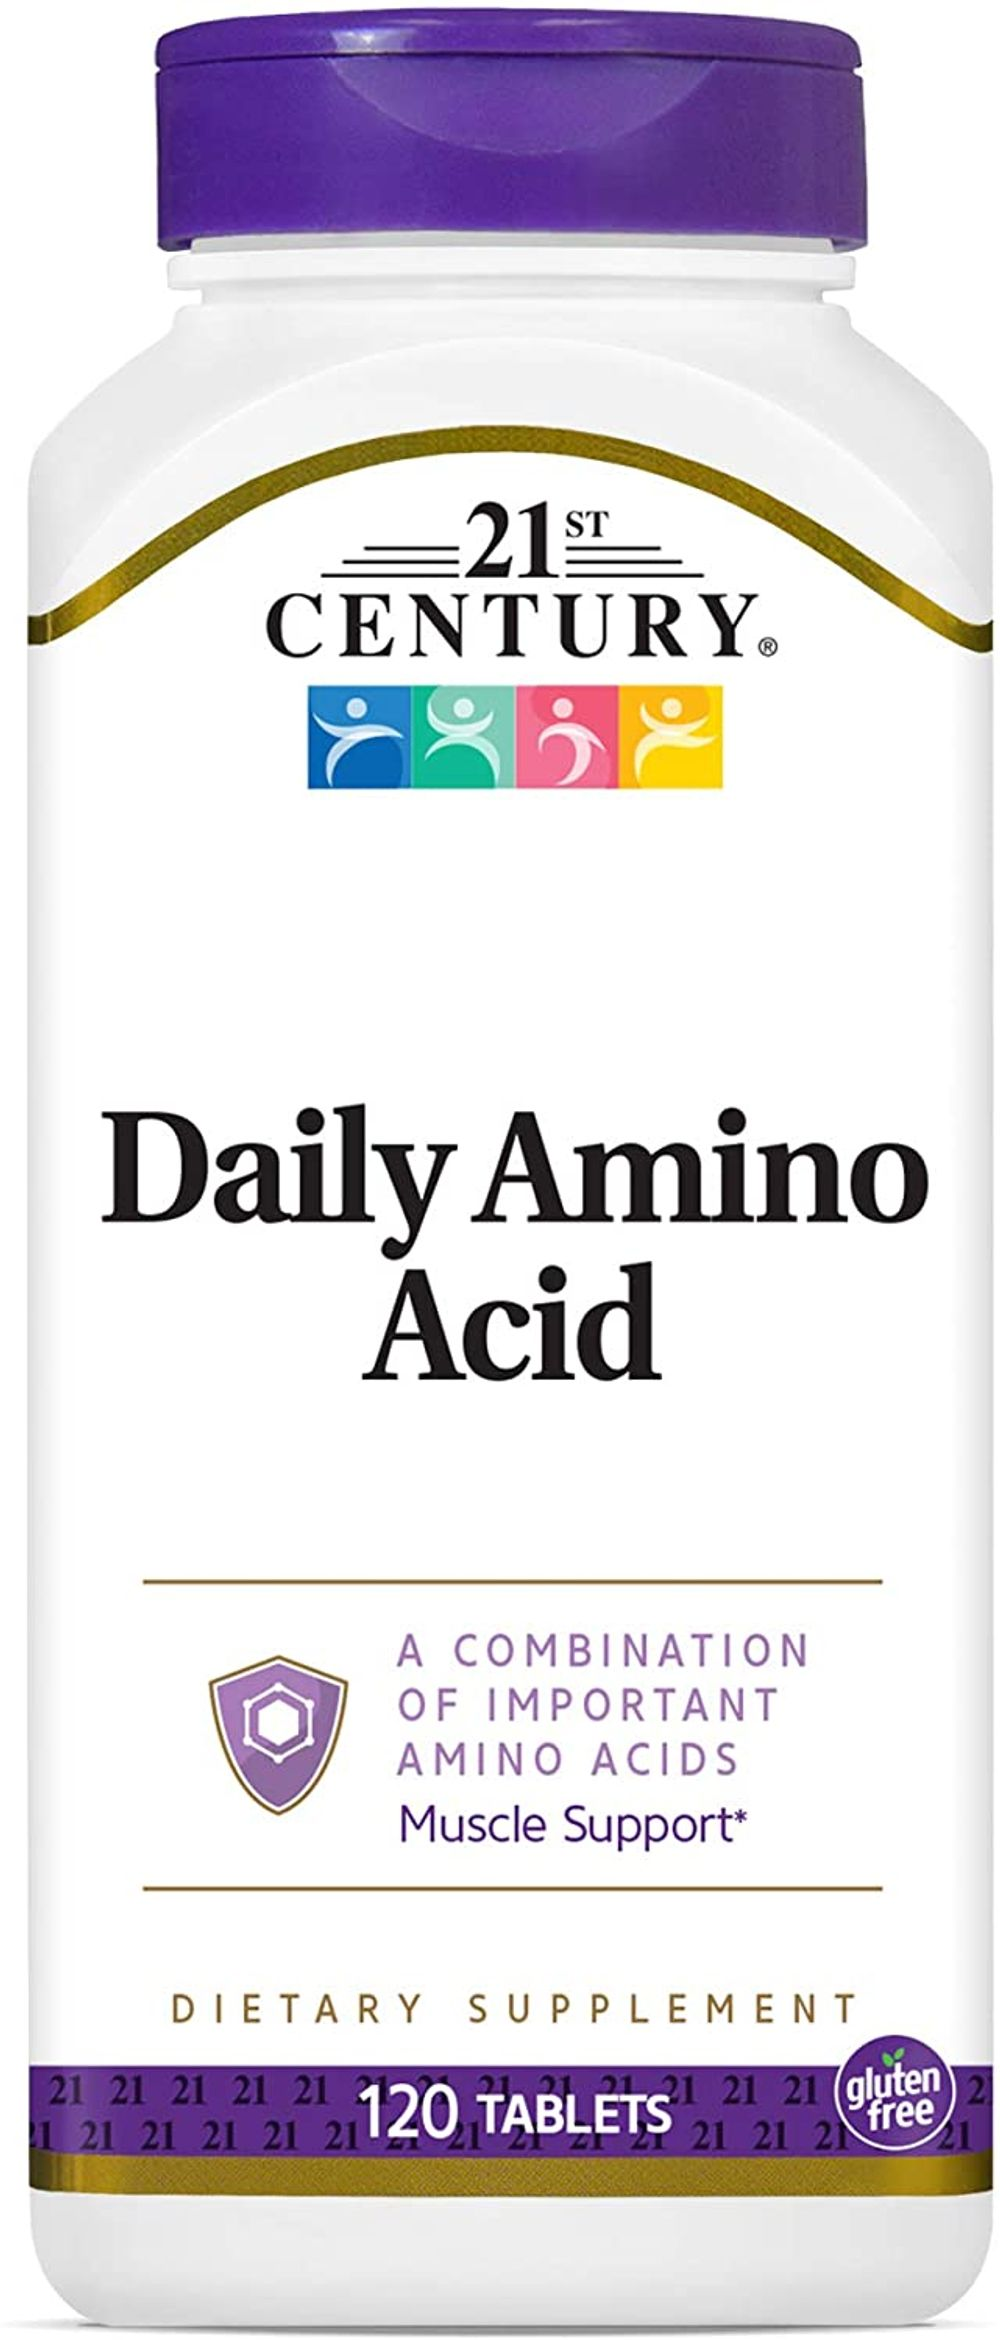 21st Century Daily Amino Acid Tablets, 120 Count